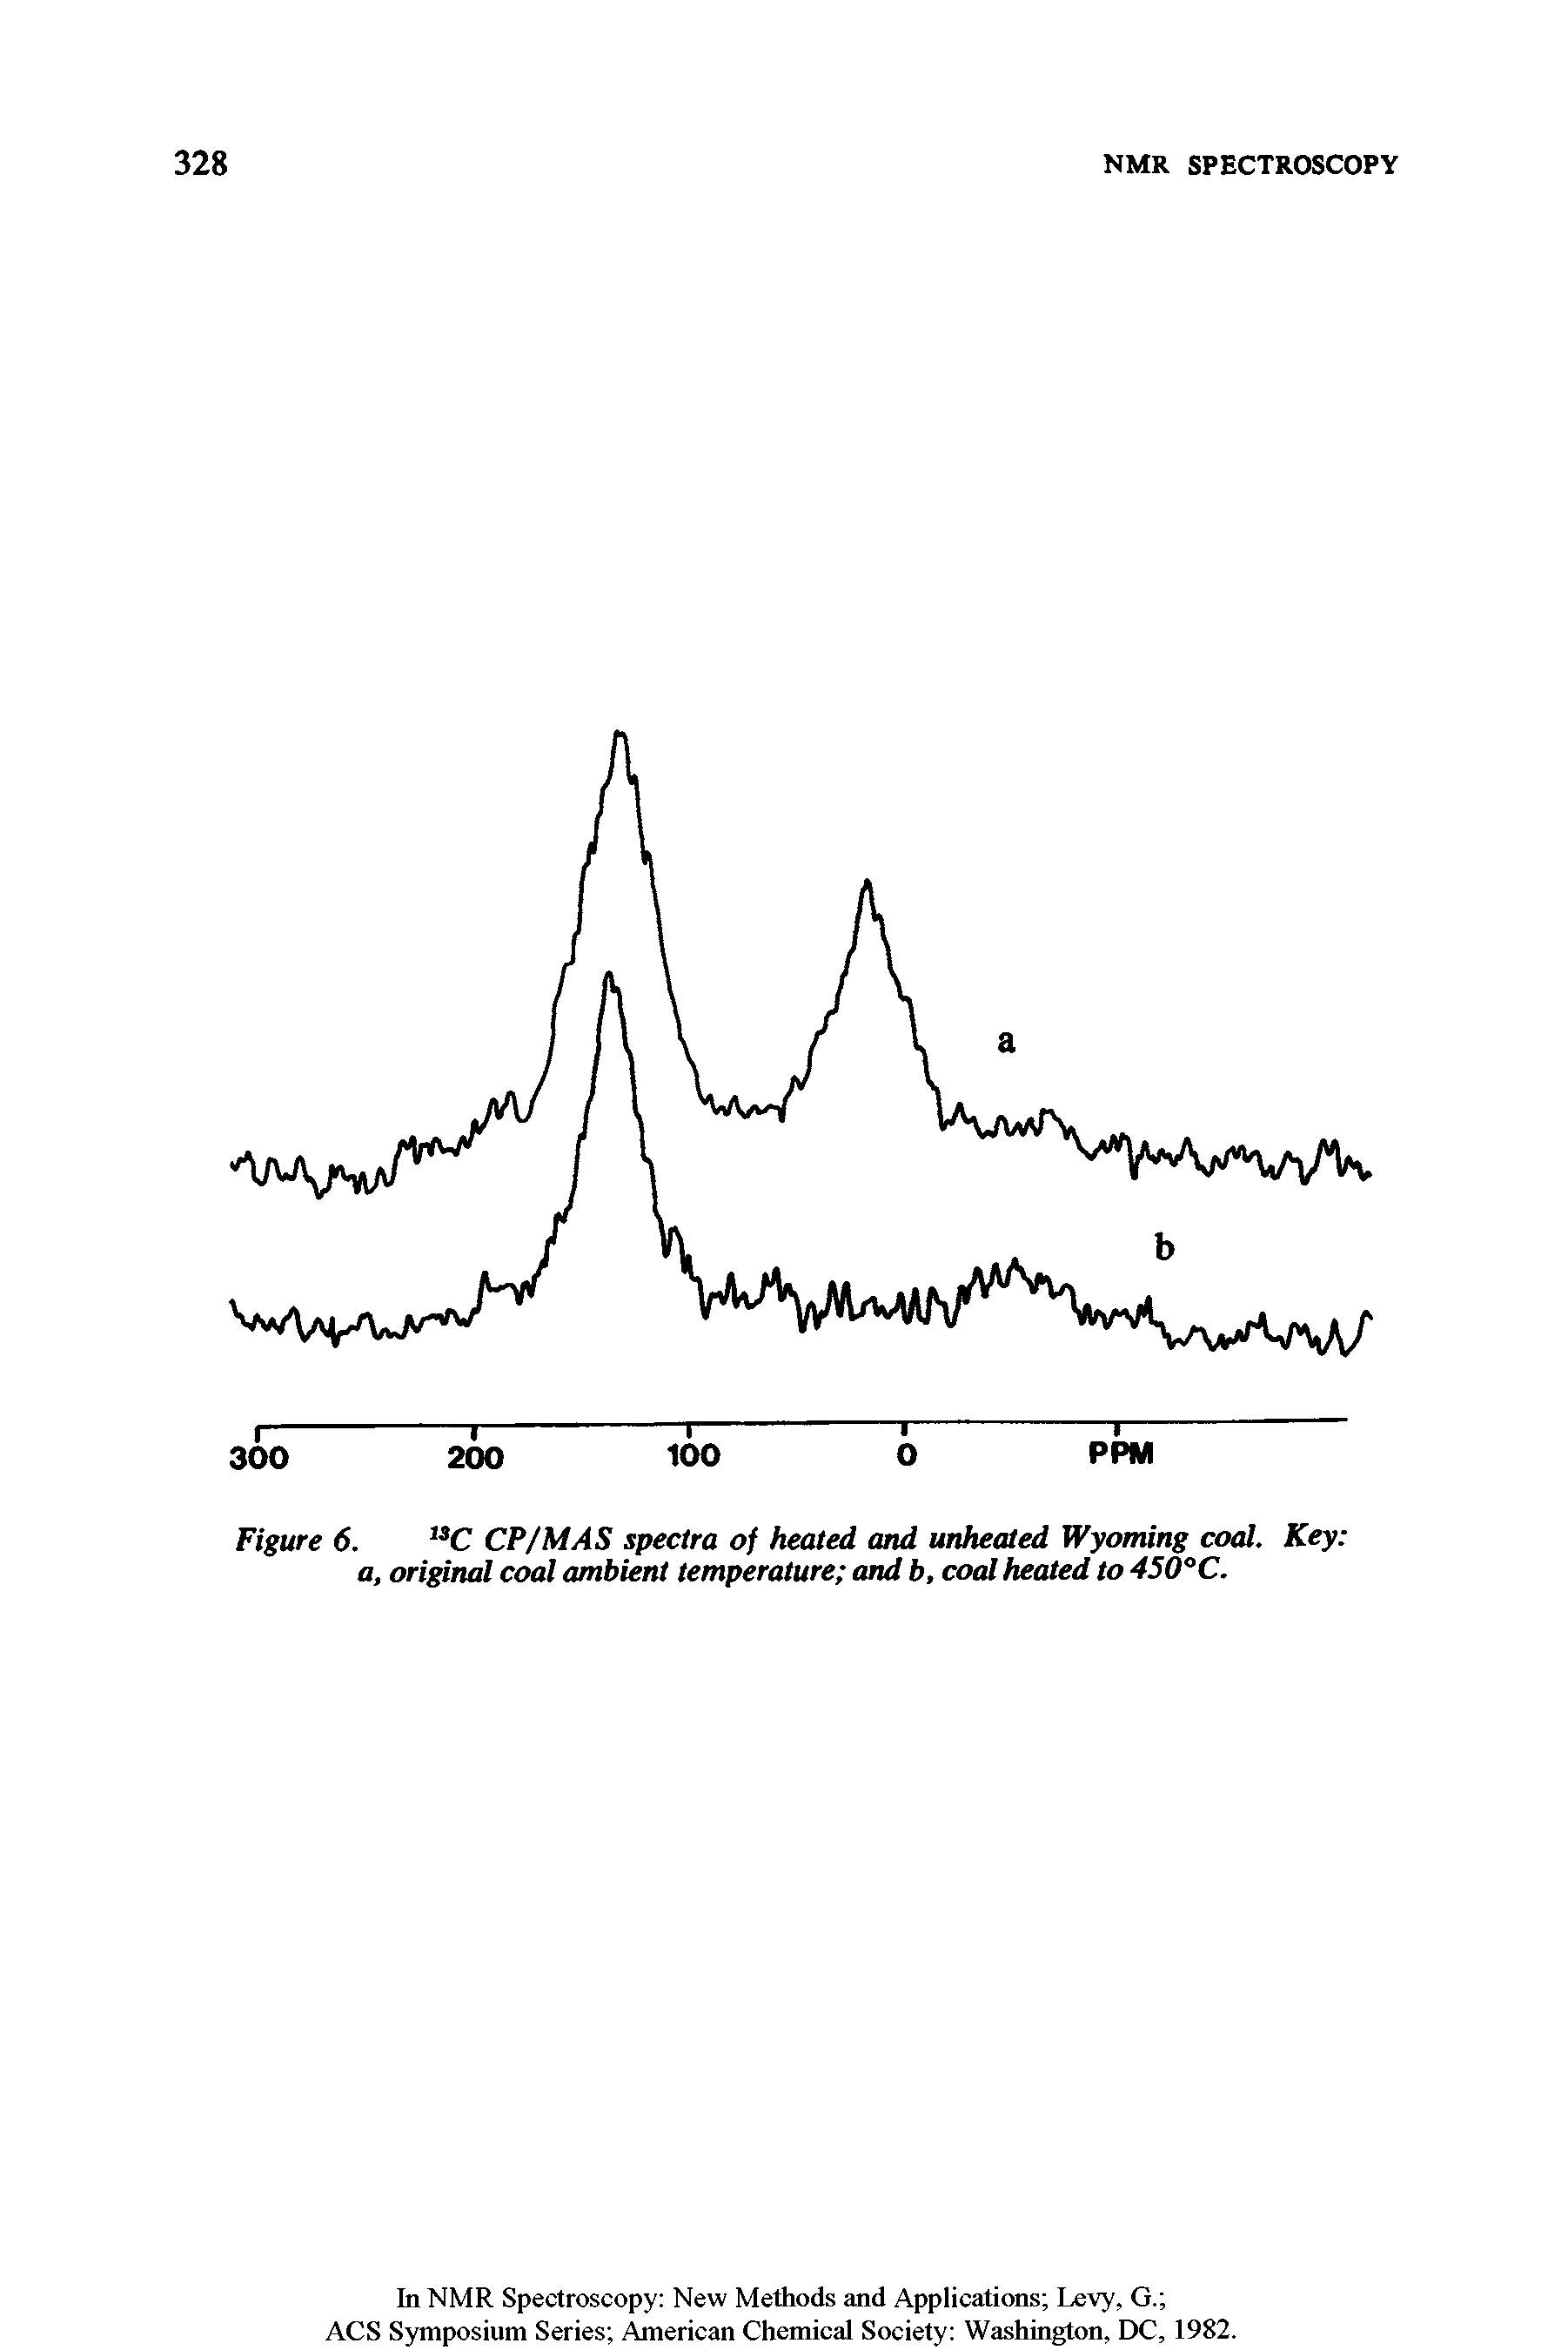 Figure 6. C CP/MAS spectra of heated and unhealed Wyoming coal. Key